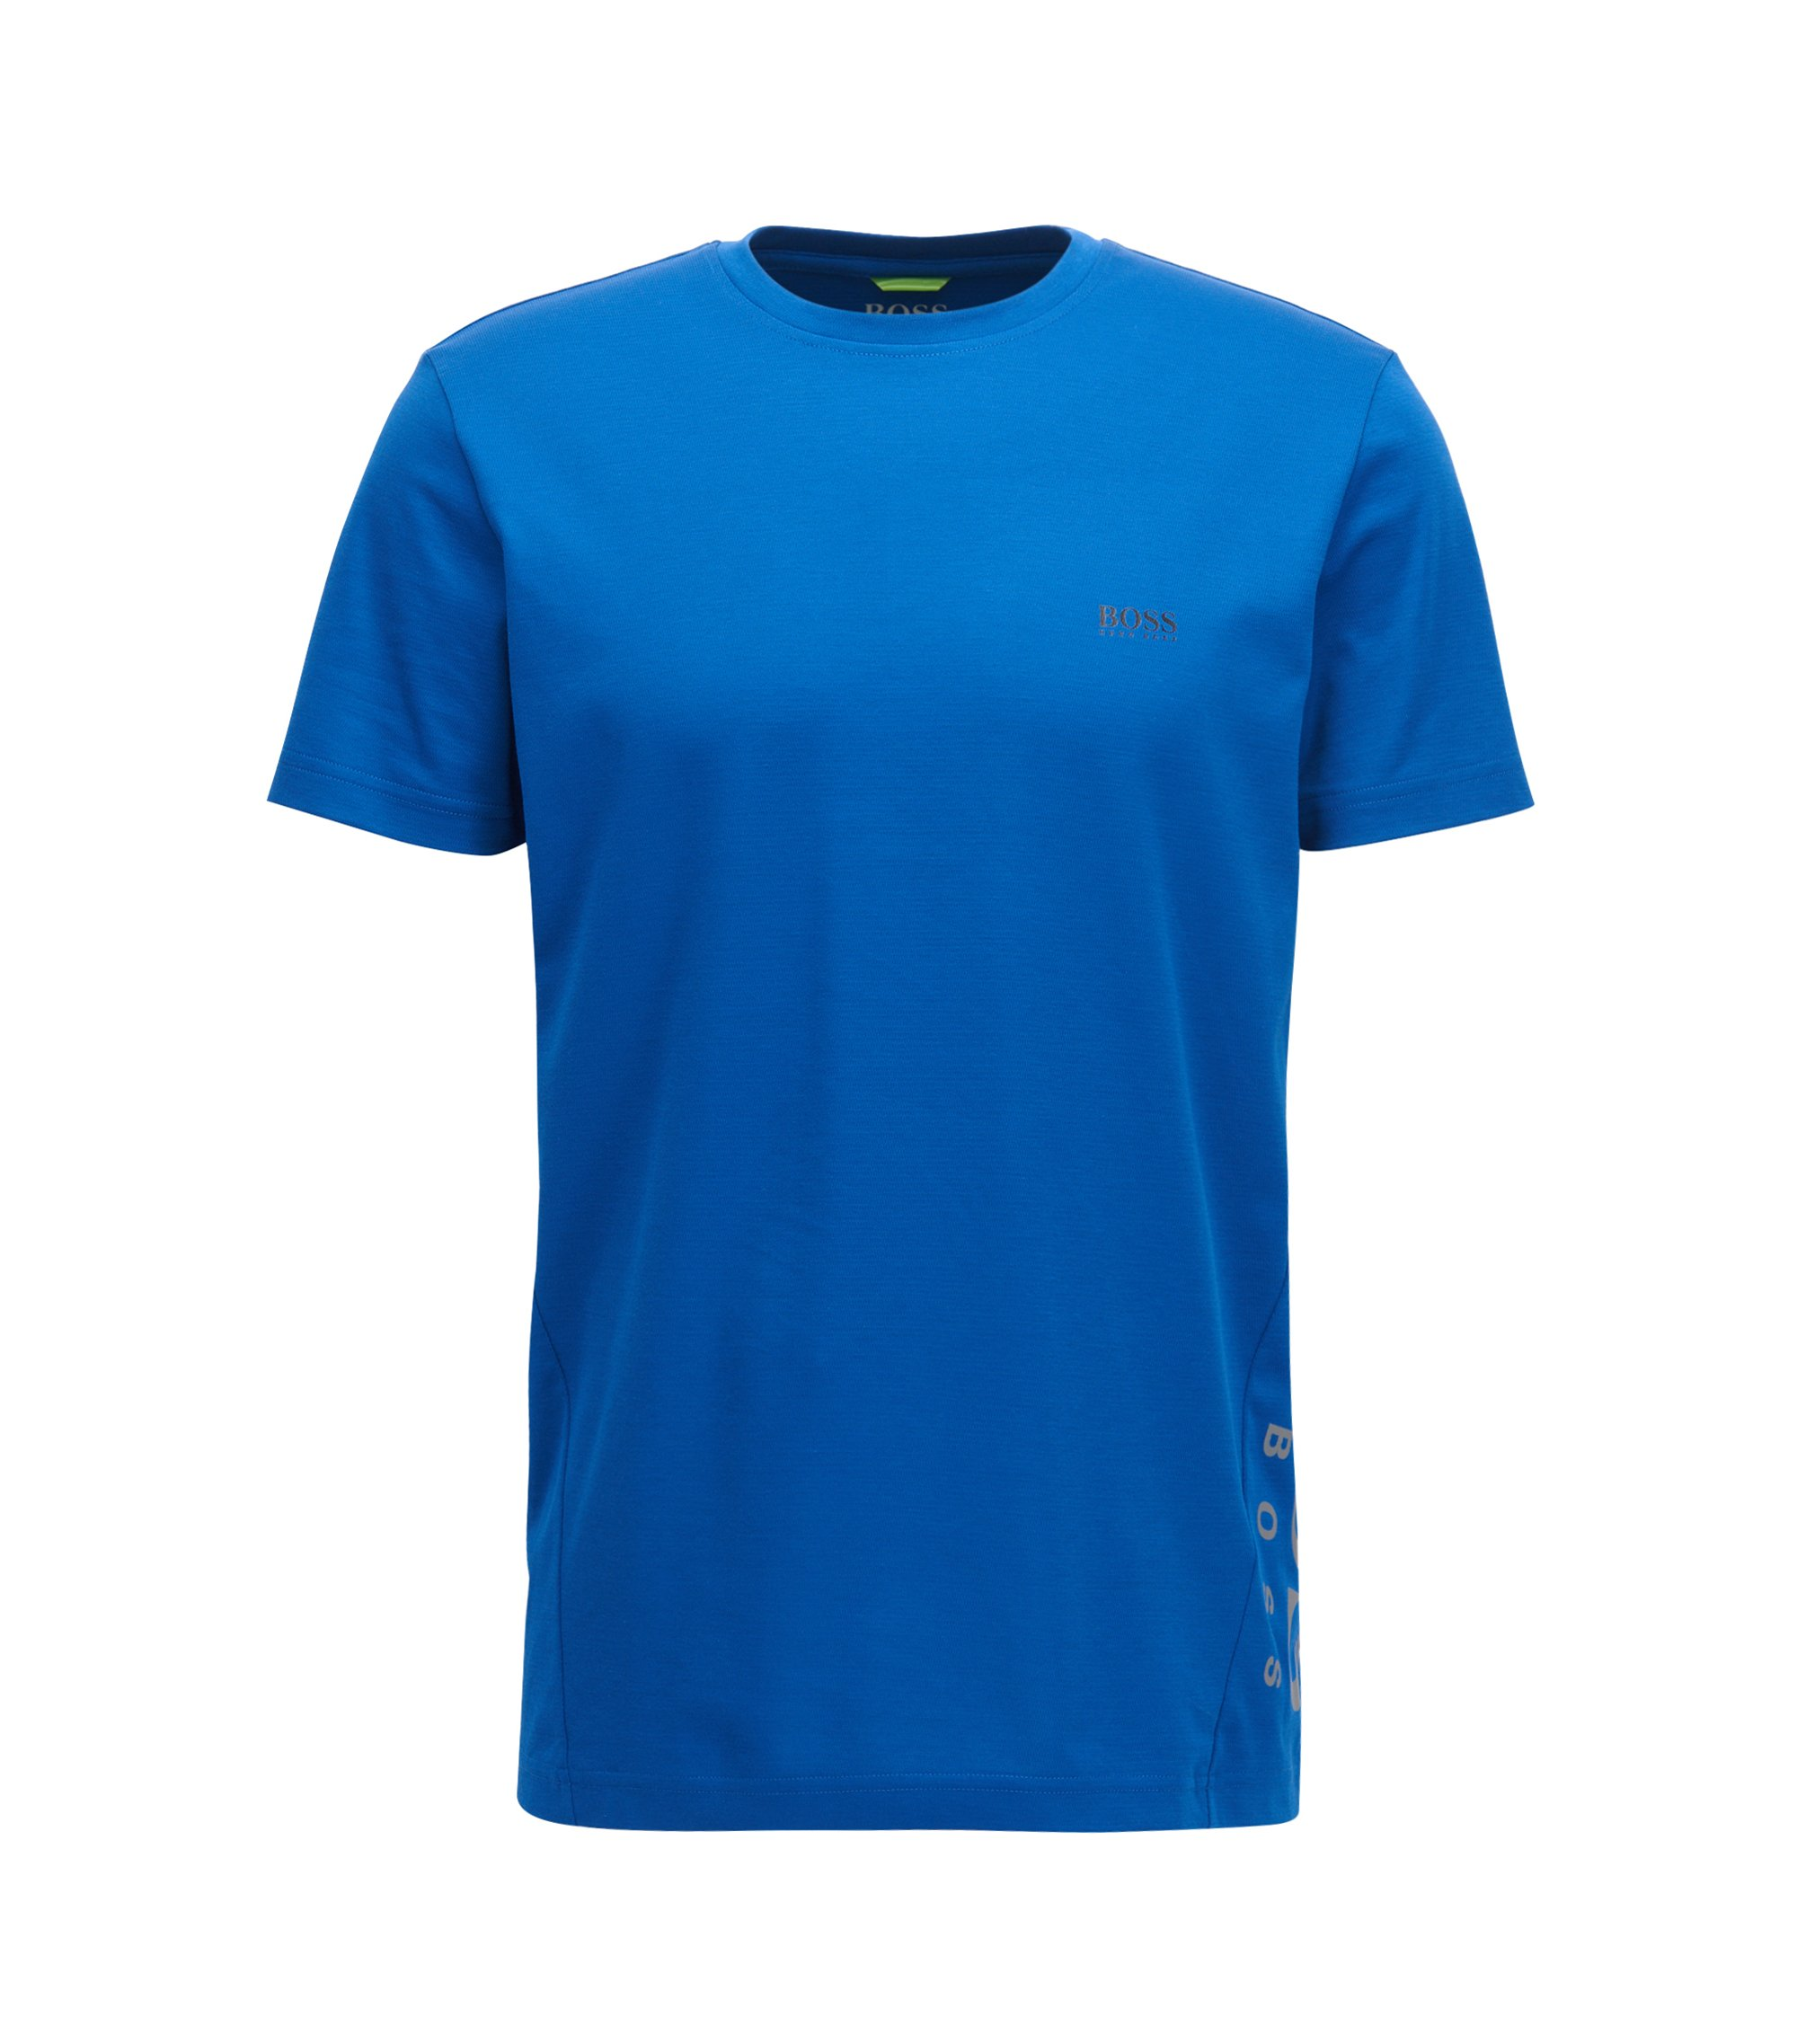 Moisture Management Cotton Blend T-Shirt | TL Tech, Blue